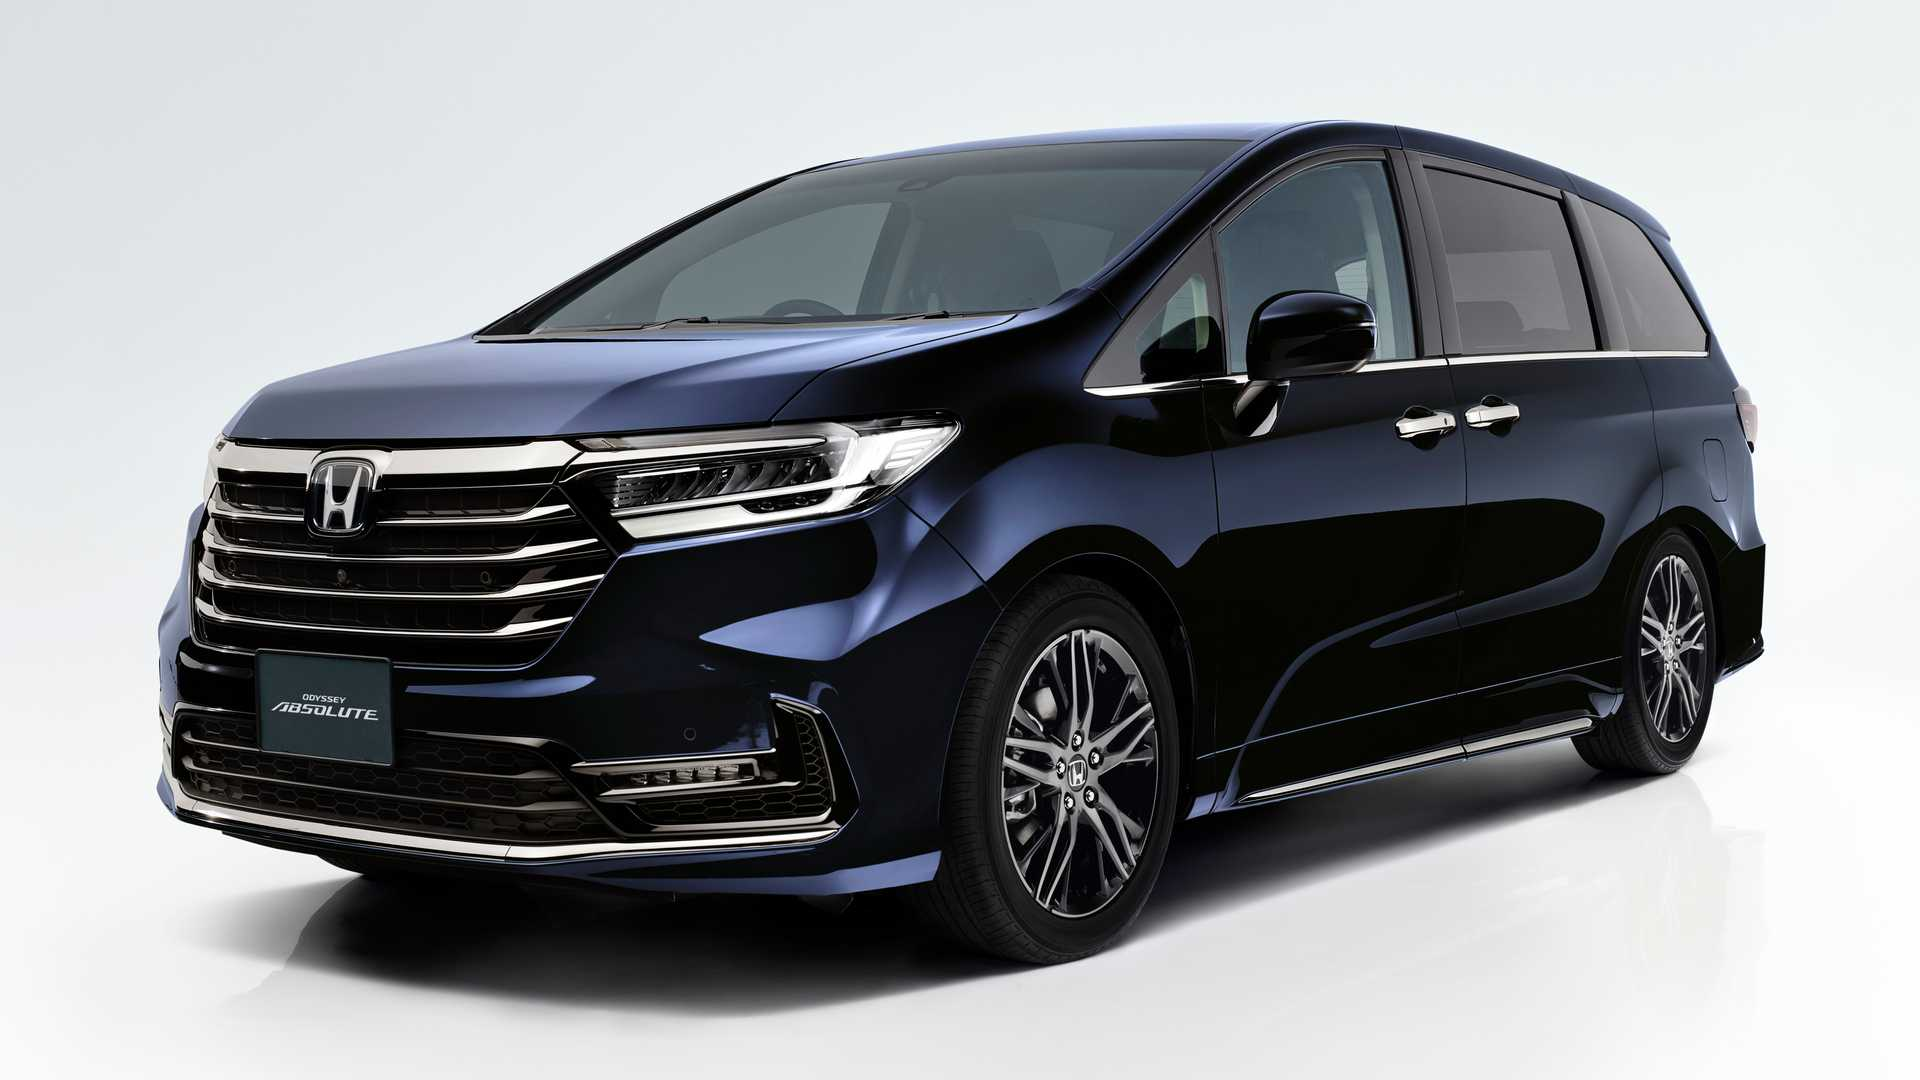 2021 Honda Odyssey Refresh In Japan Has New Face, Gesture ...